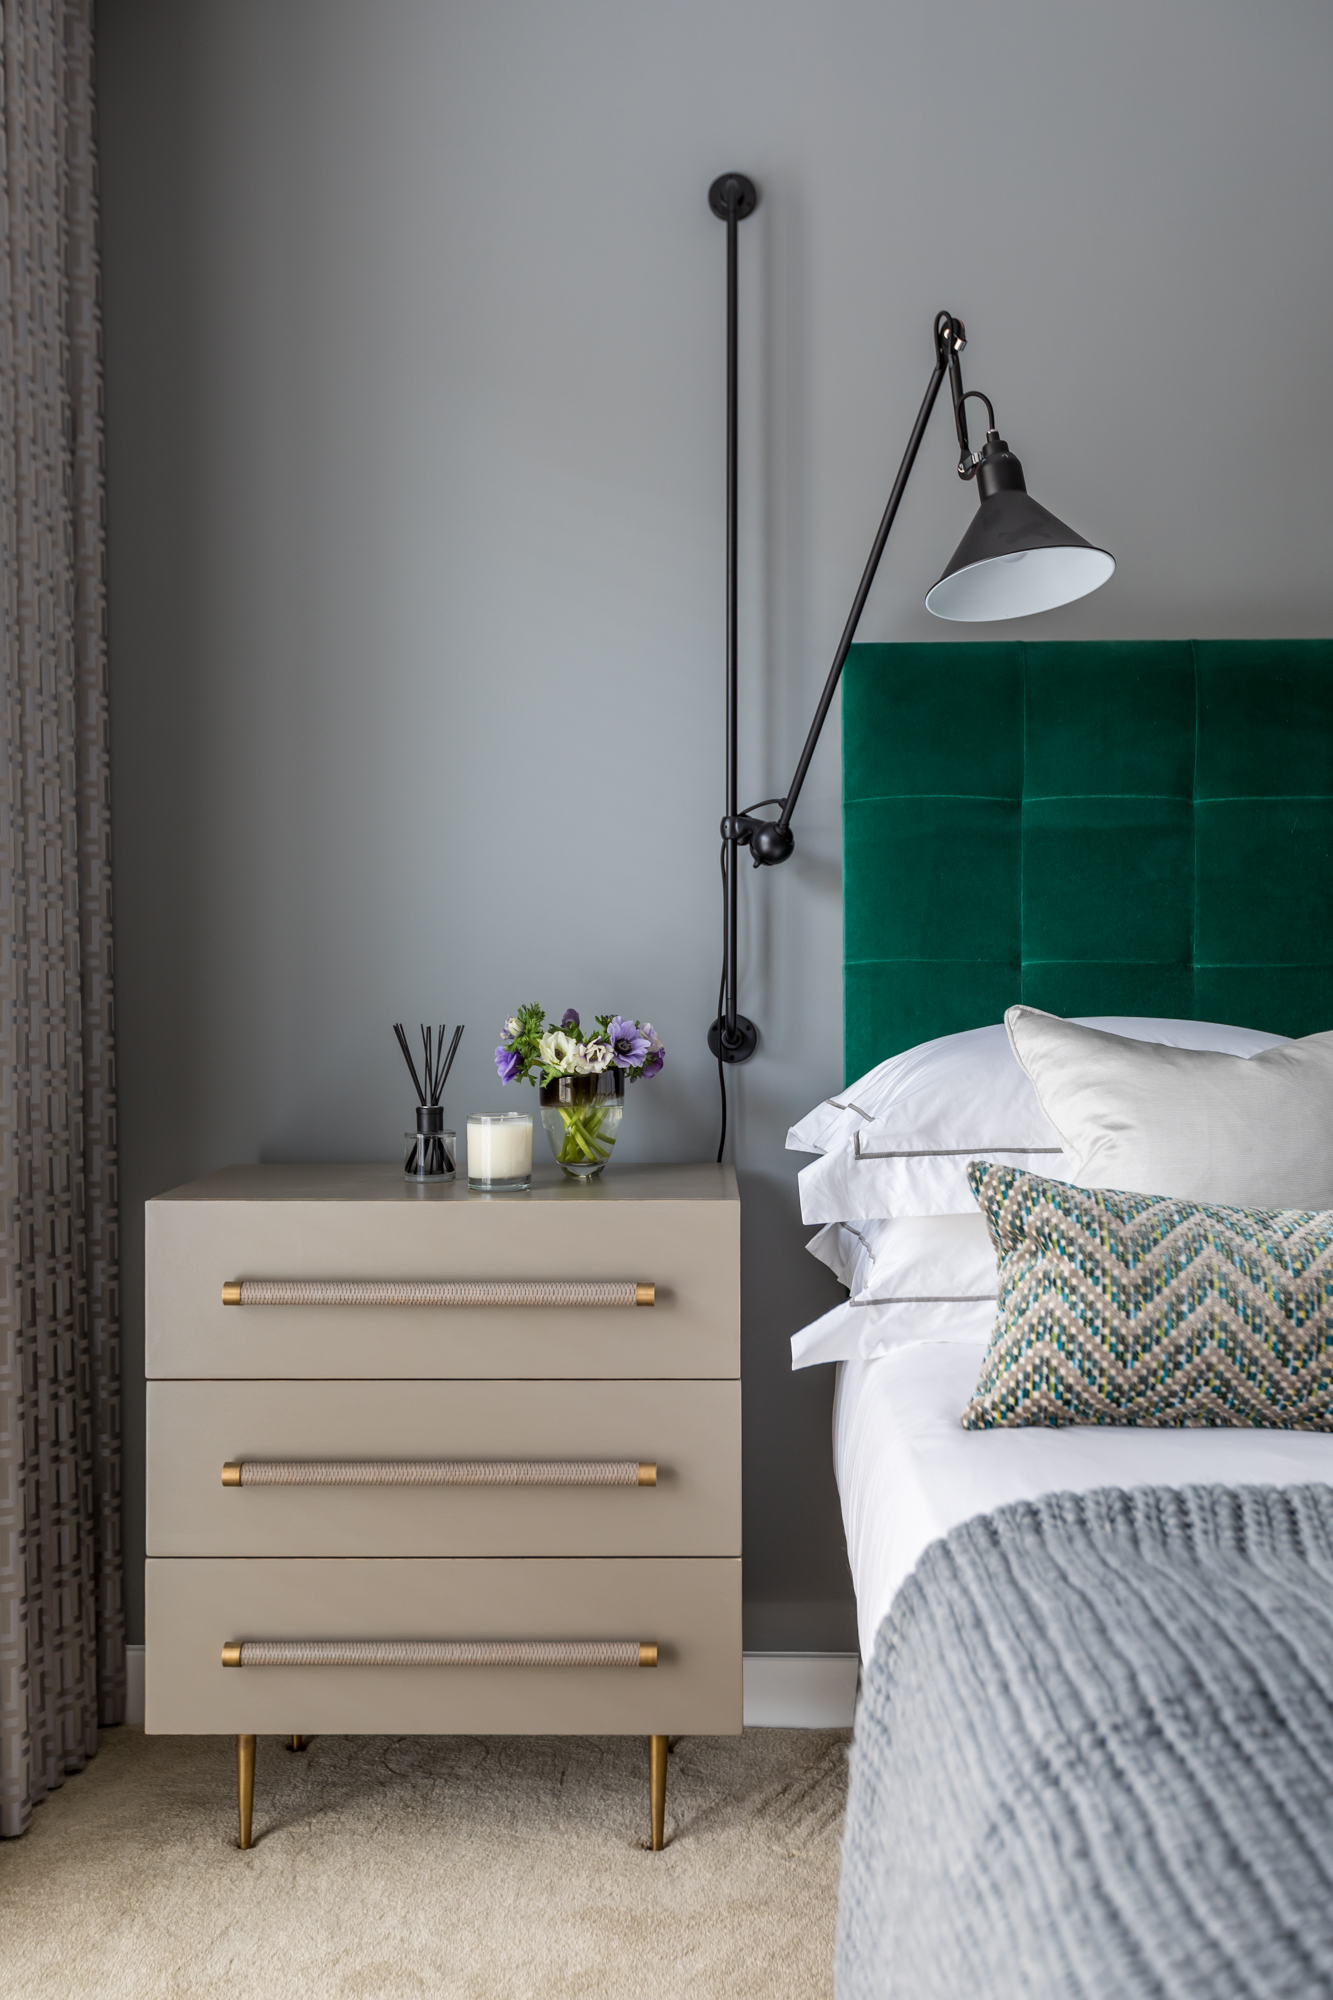 jonathan bond, interior photographer, gray bedside cabinet, wall lamp & double bed, cambridgeshire